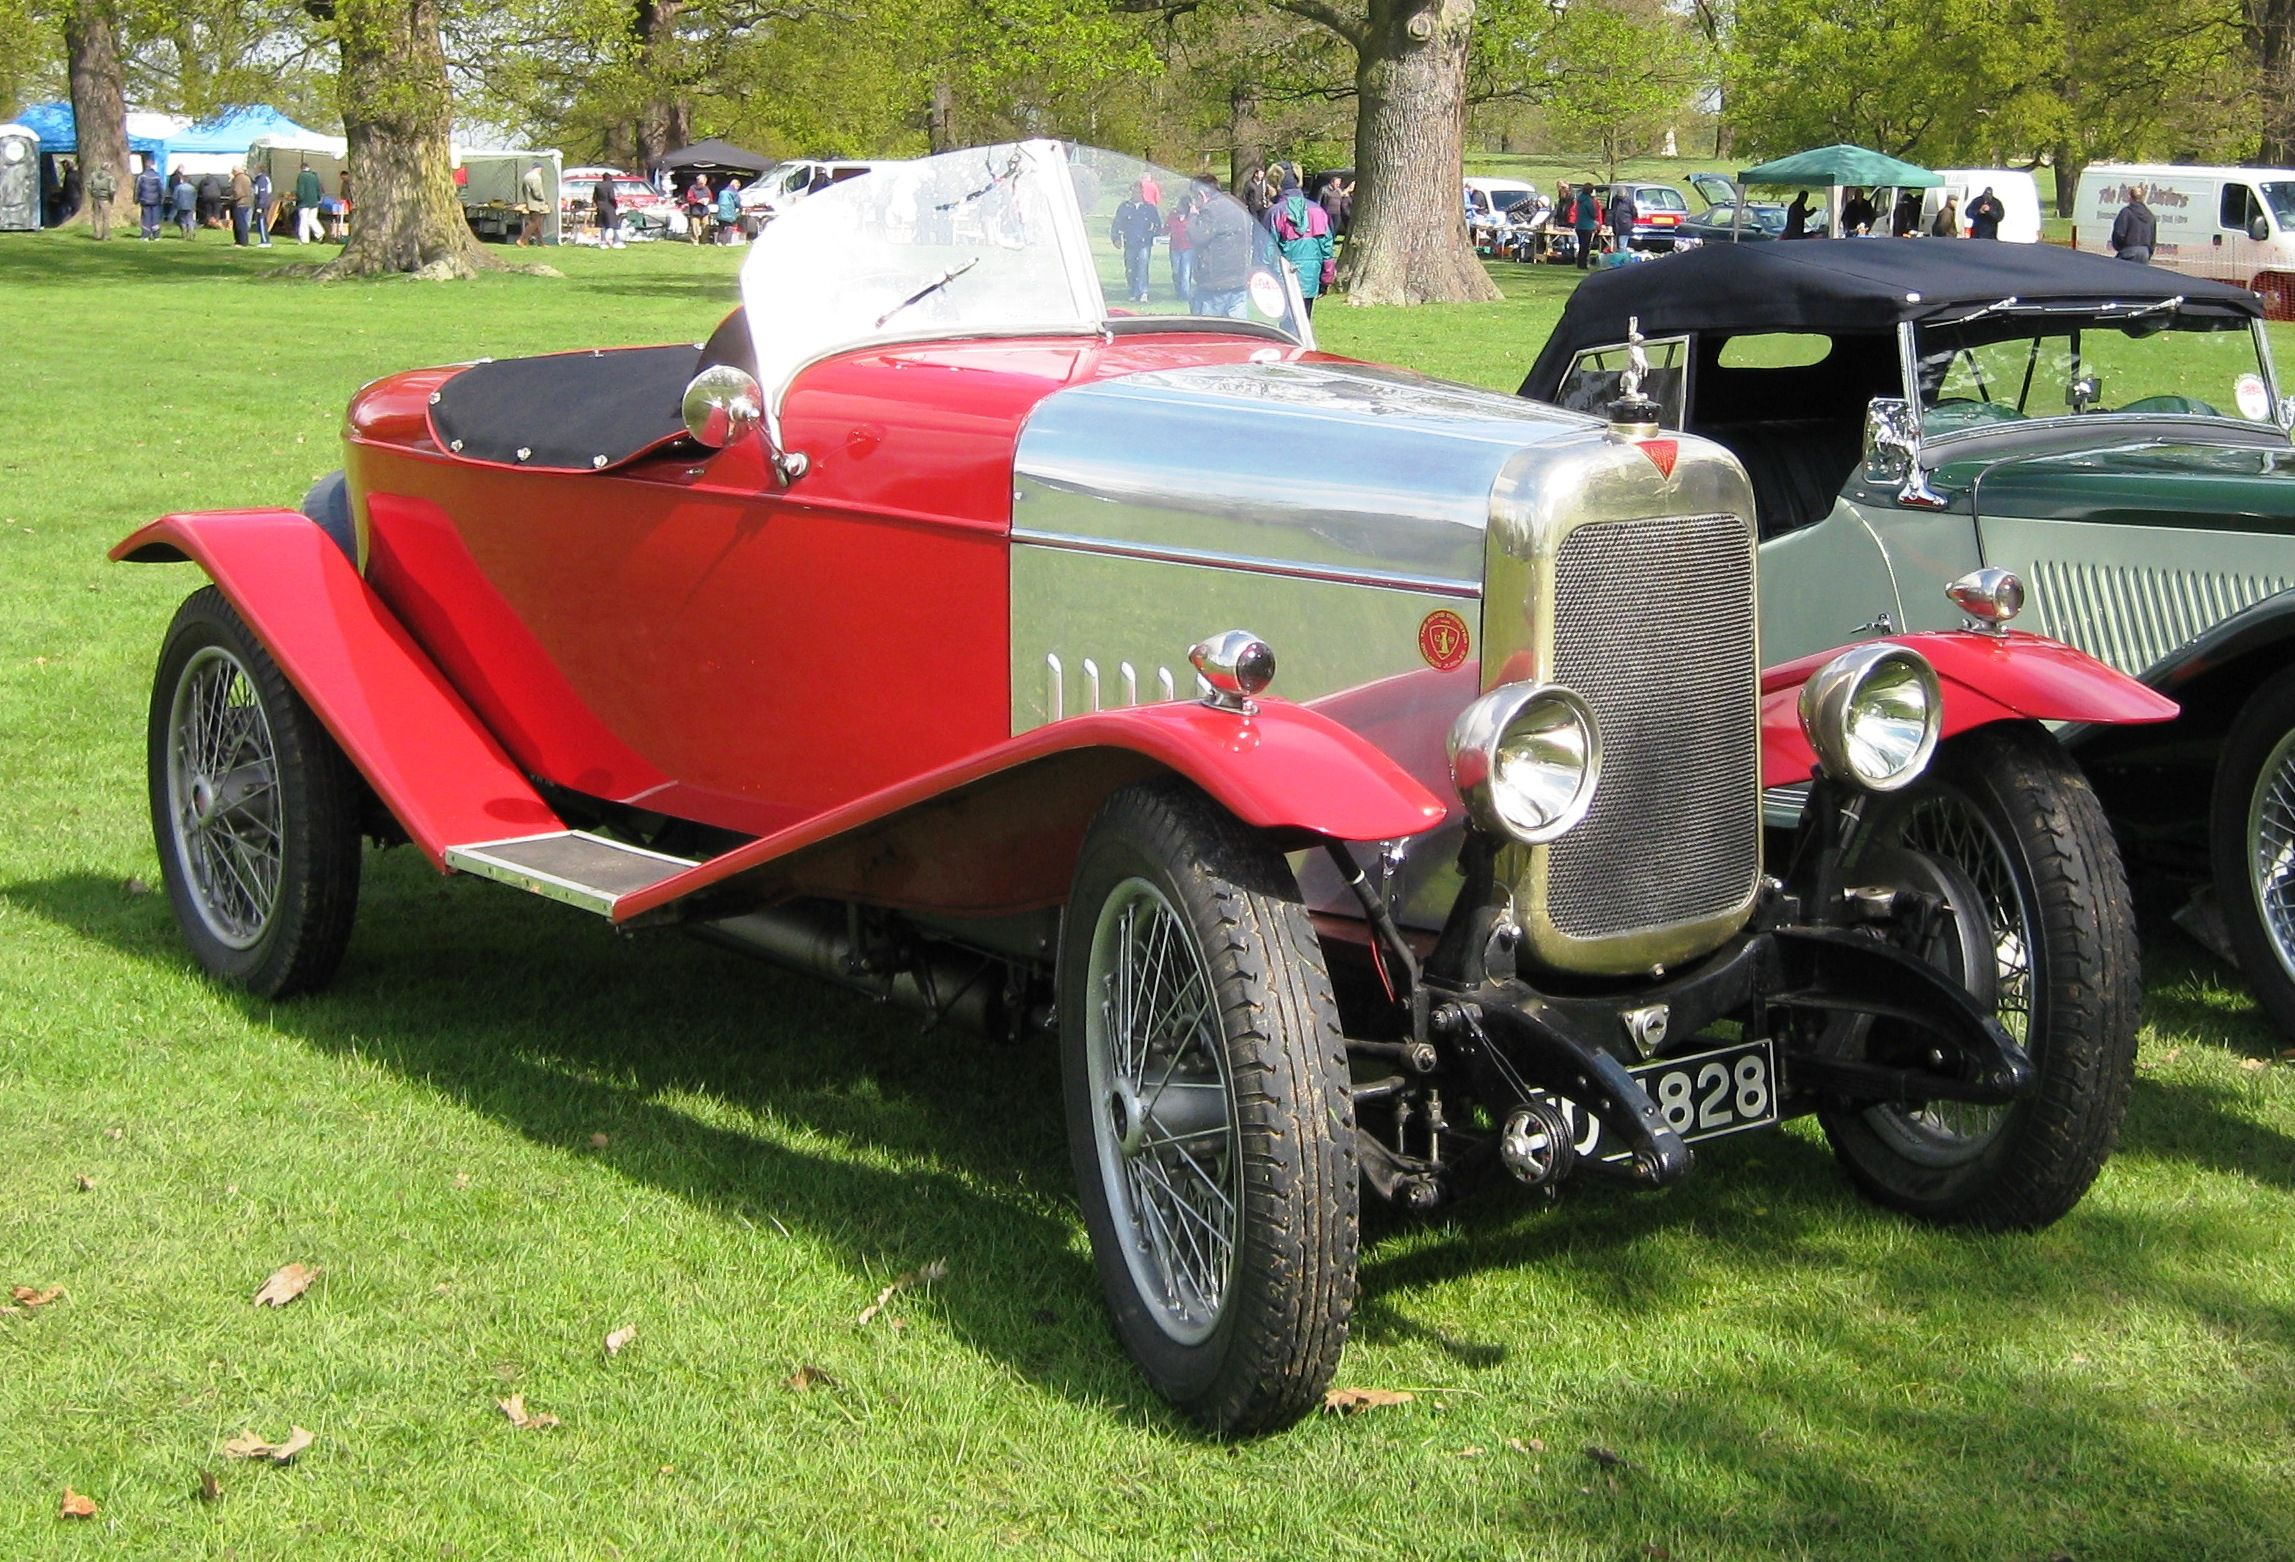 1932 Alvis 12/50 Type TJ, rebuilt to resemble a car of the mid-1920s ...